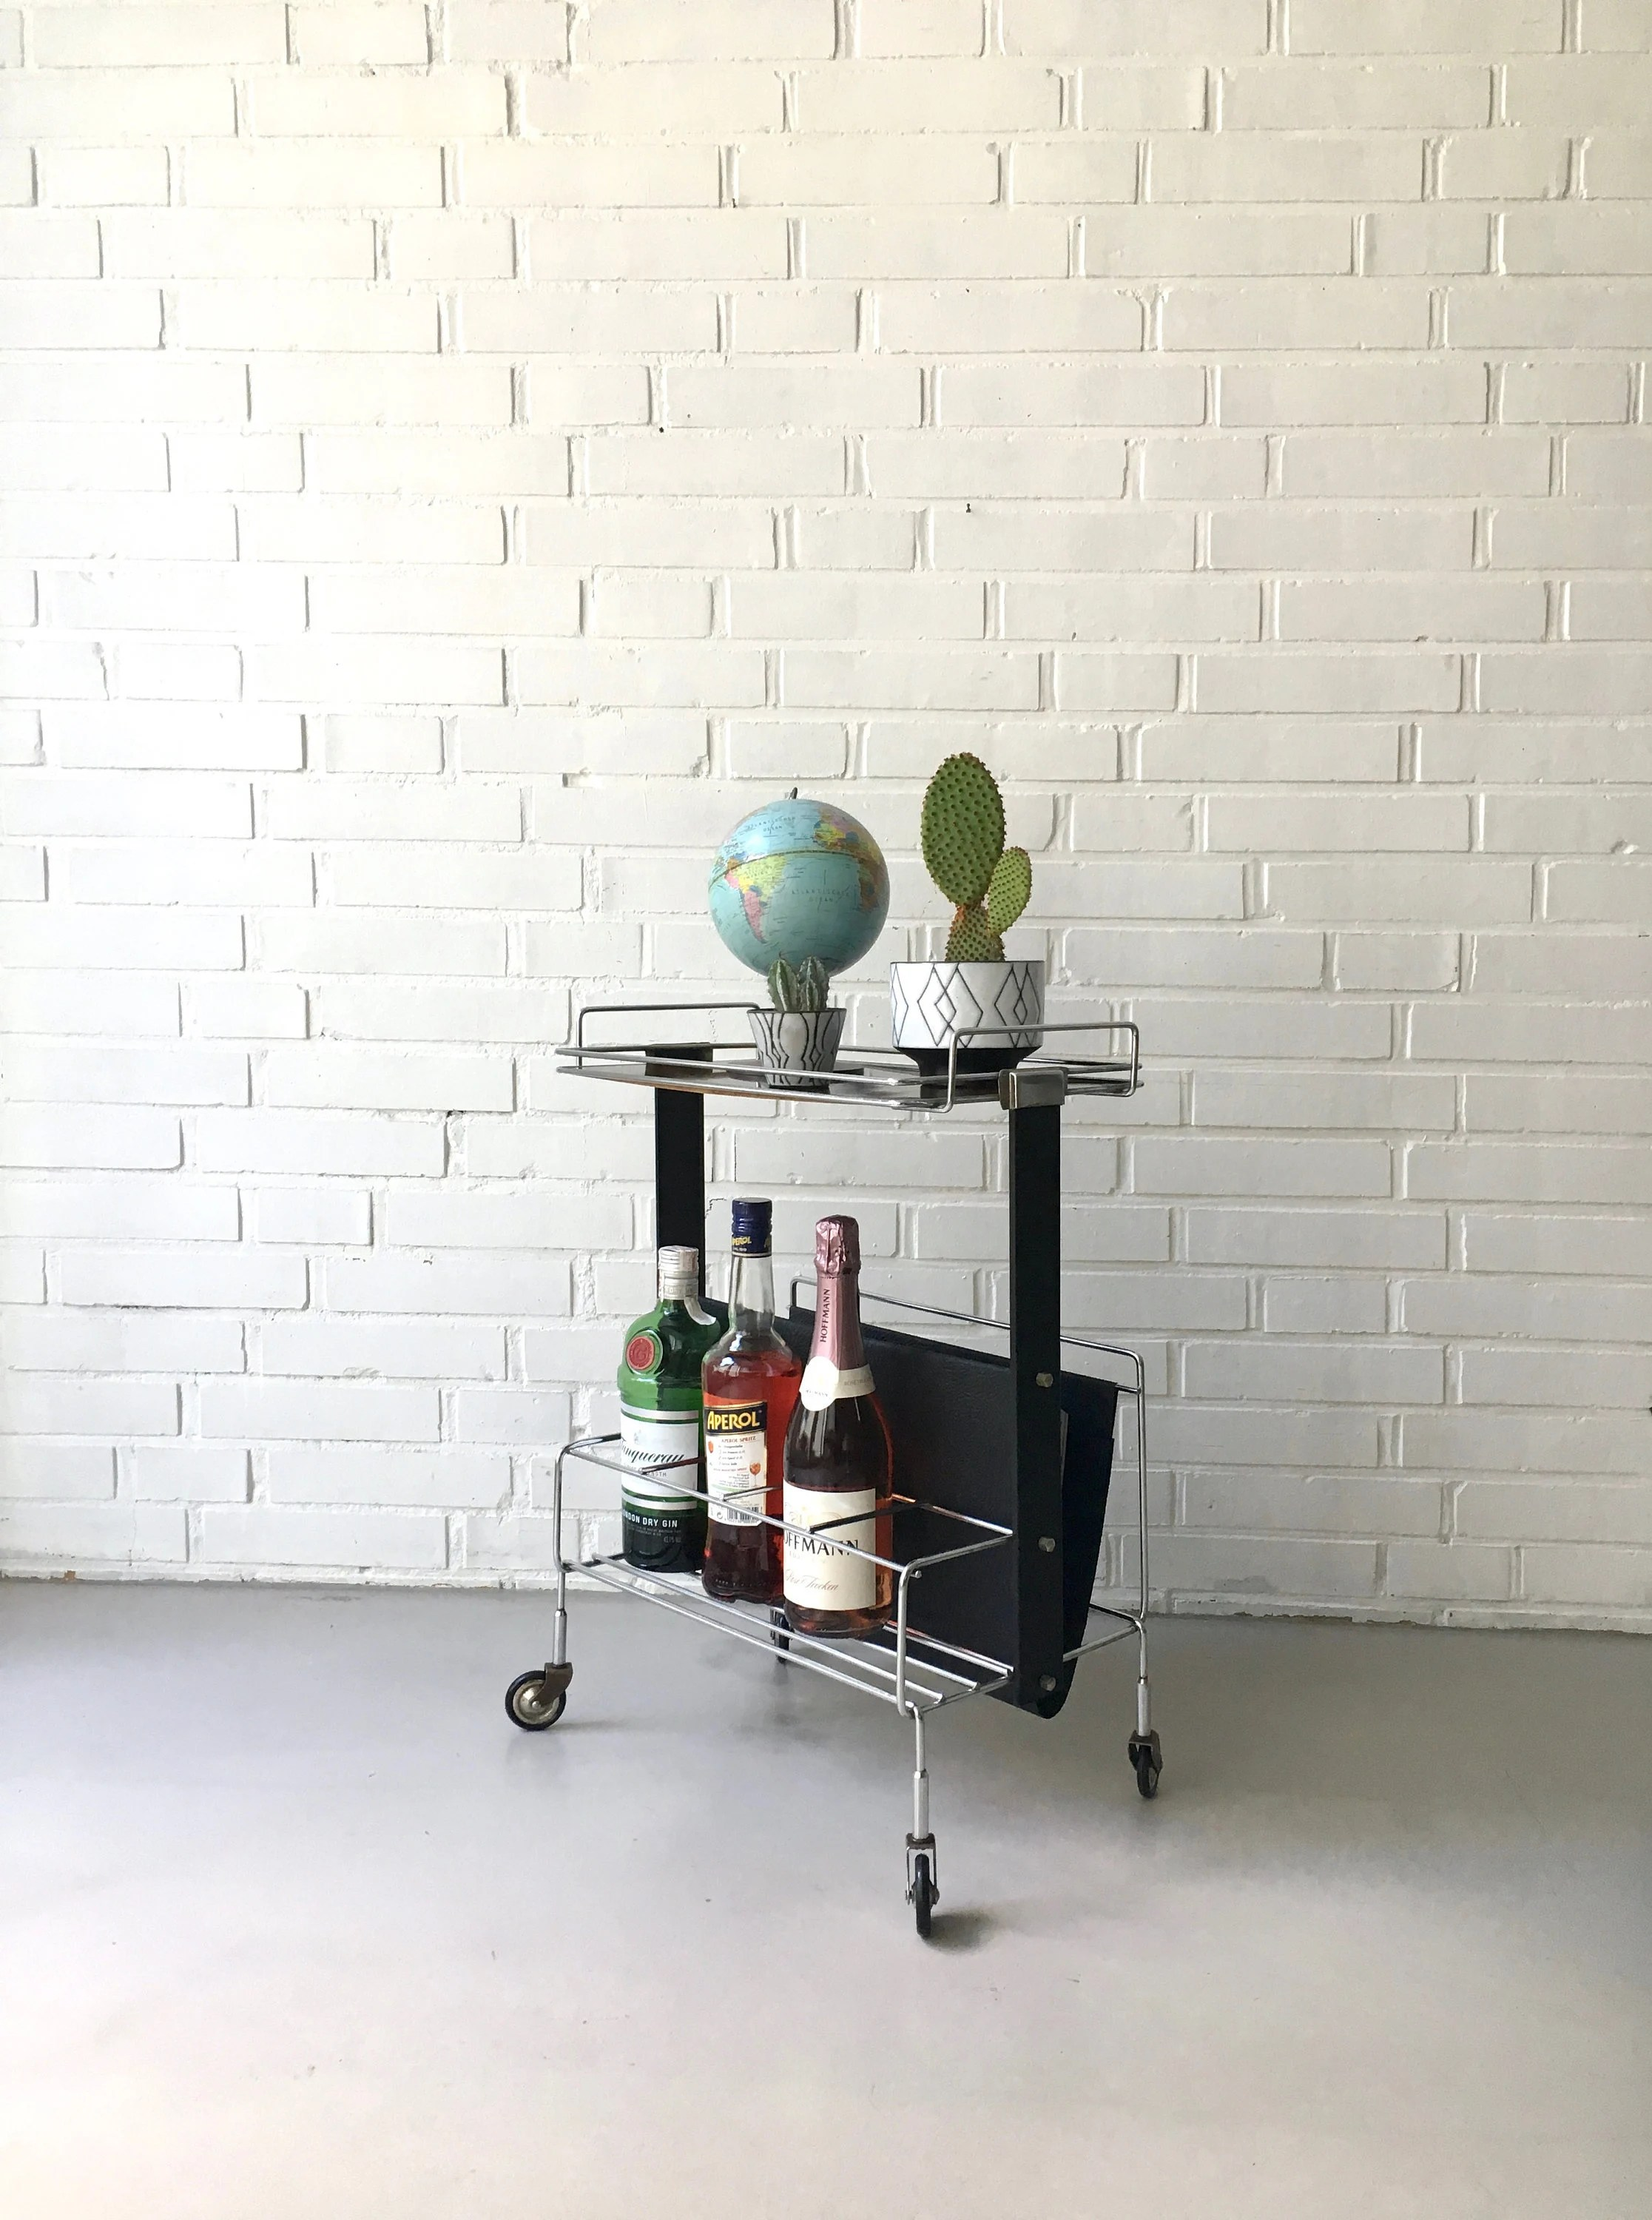 String Regal Pinterest Magazine Stand Trolley Vintage Trolley Mid Century Newspaper Trolley Occasional Table Vintage String Regal Mid Century Furniture